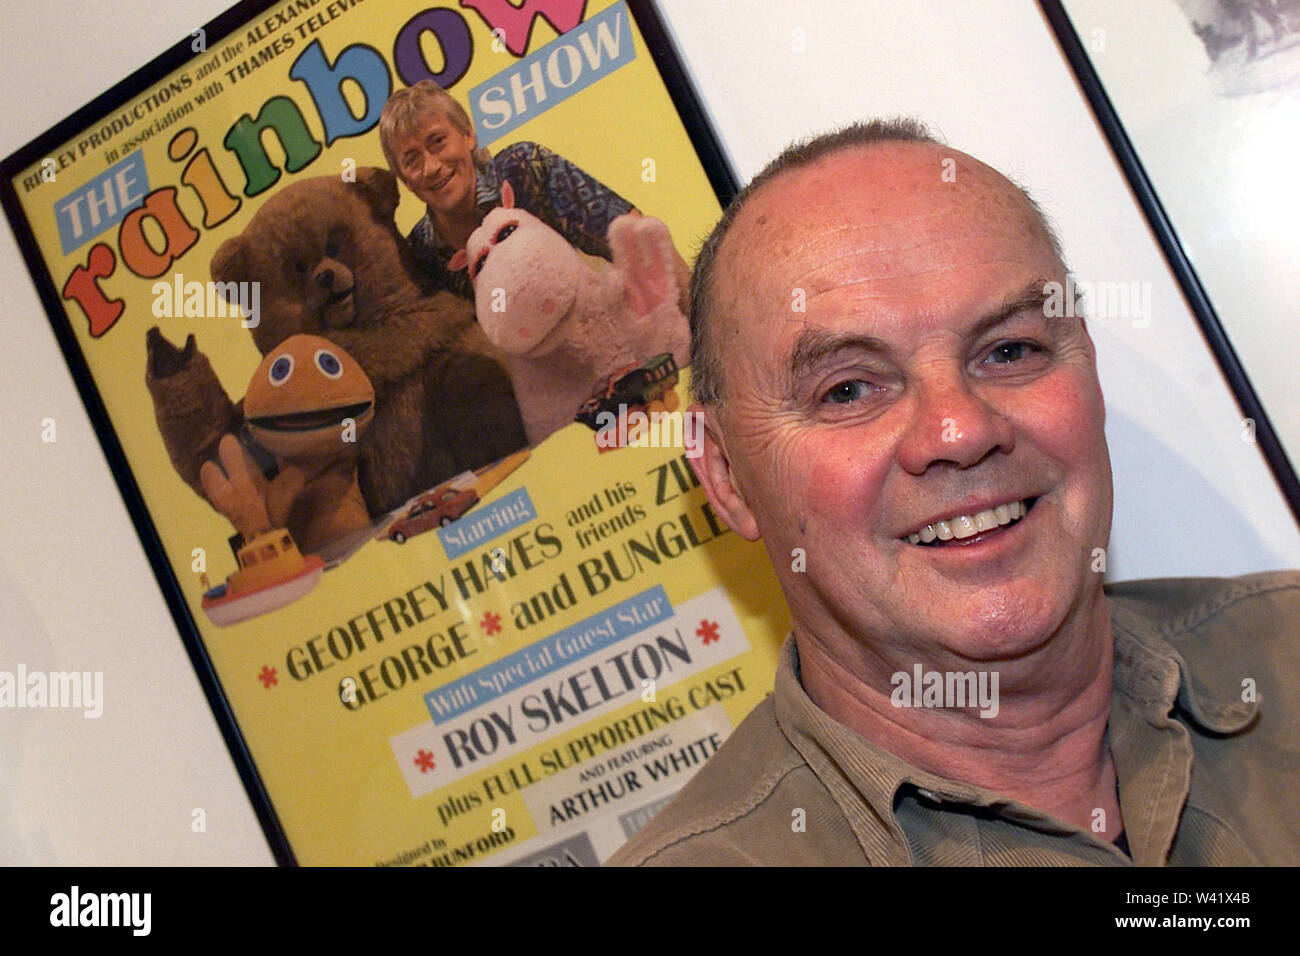 The late Roy Skelton who was the voice of George and Zippy in the TV show Rainbow. Roy also wrote and directed some of the programmes. Roy also did many of the Dr Who voices including the Darleks. Roy retired to a seafront home in Brighton Stock Photo